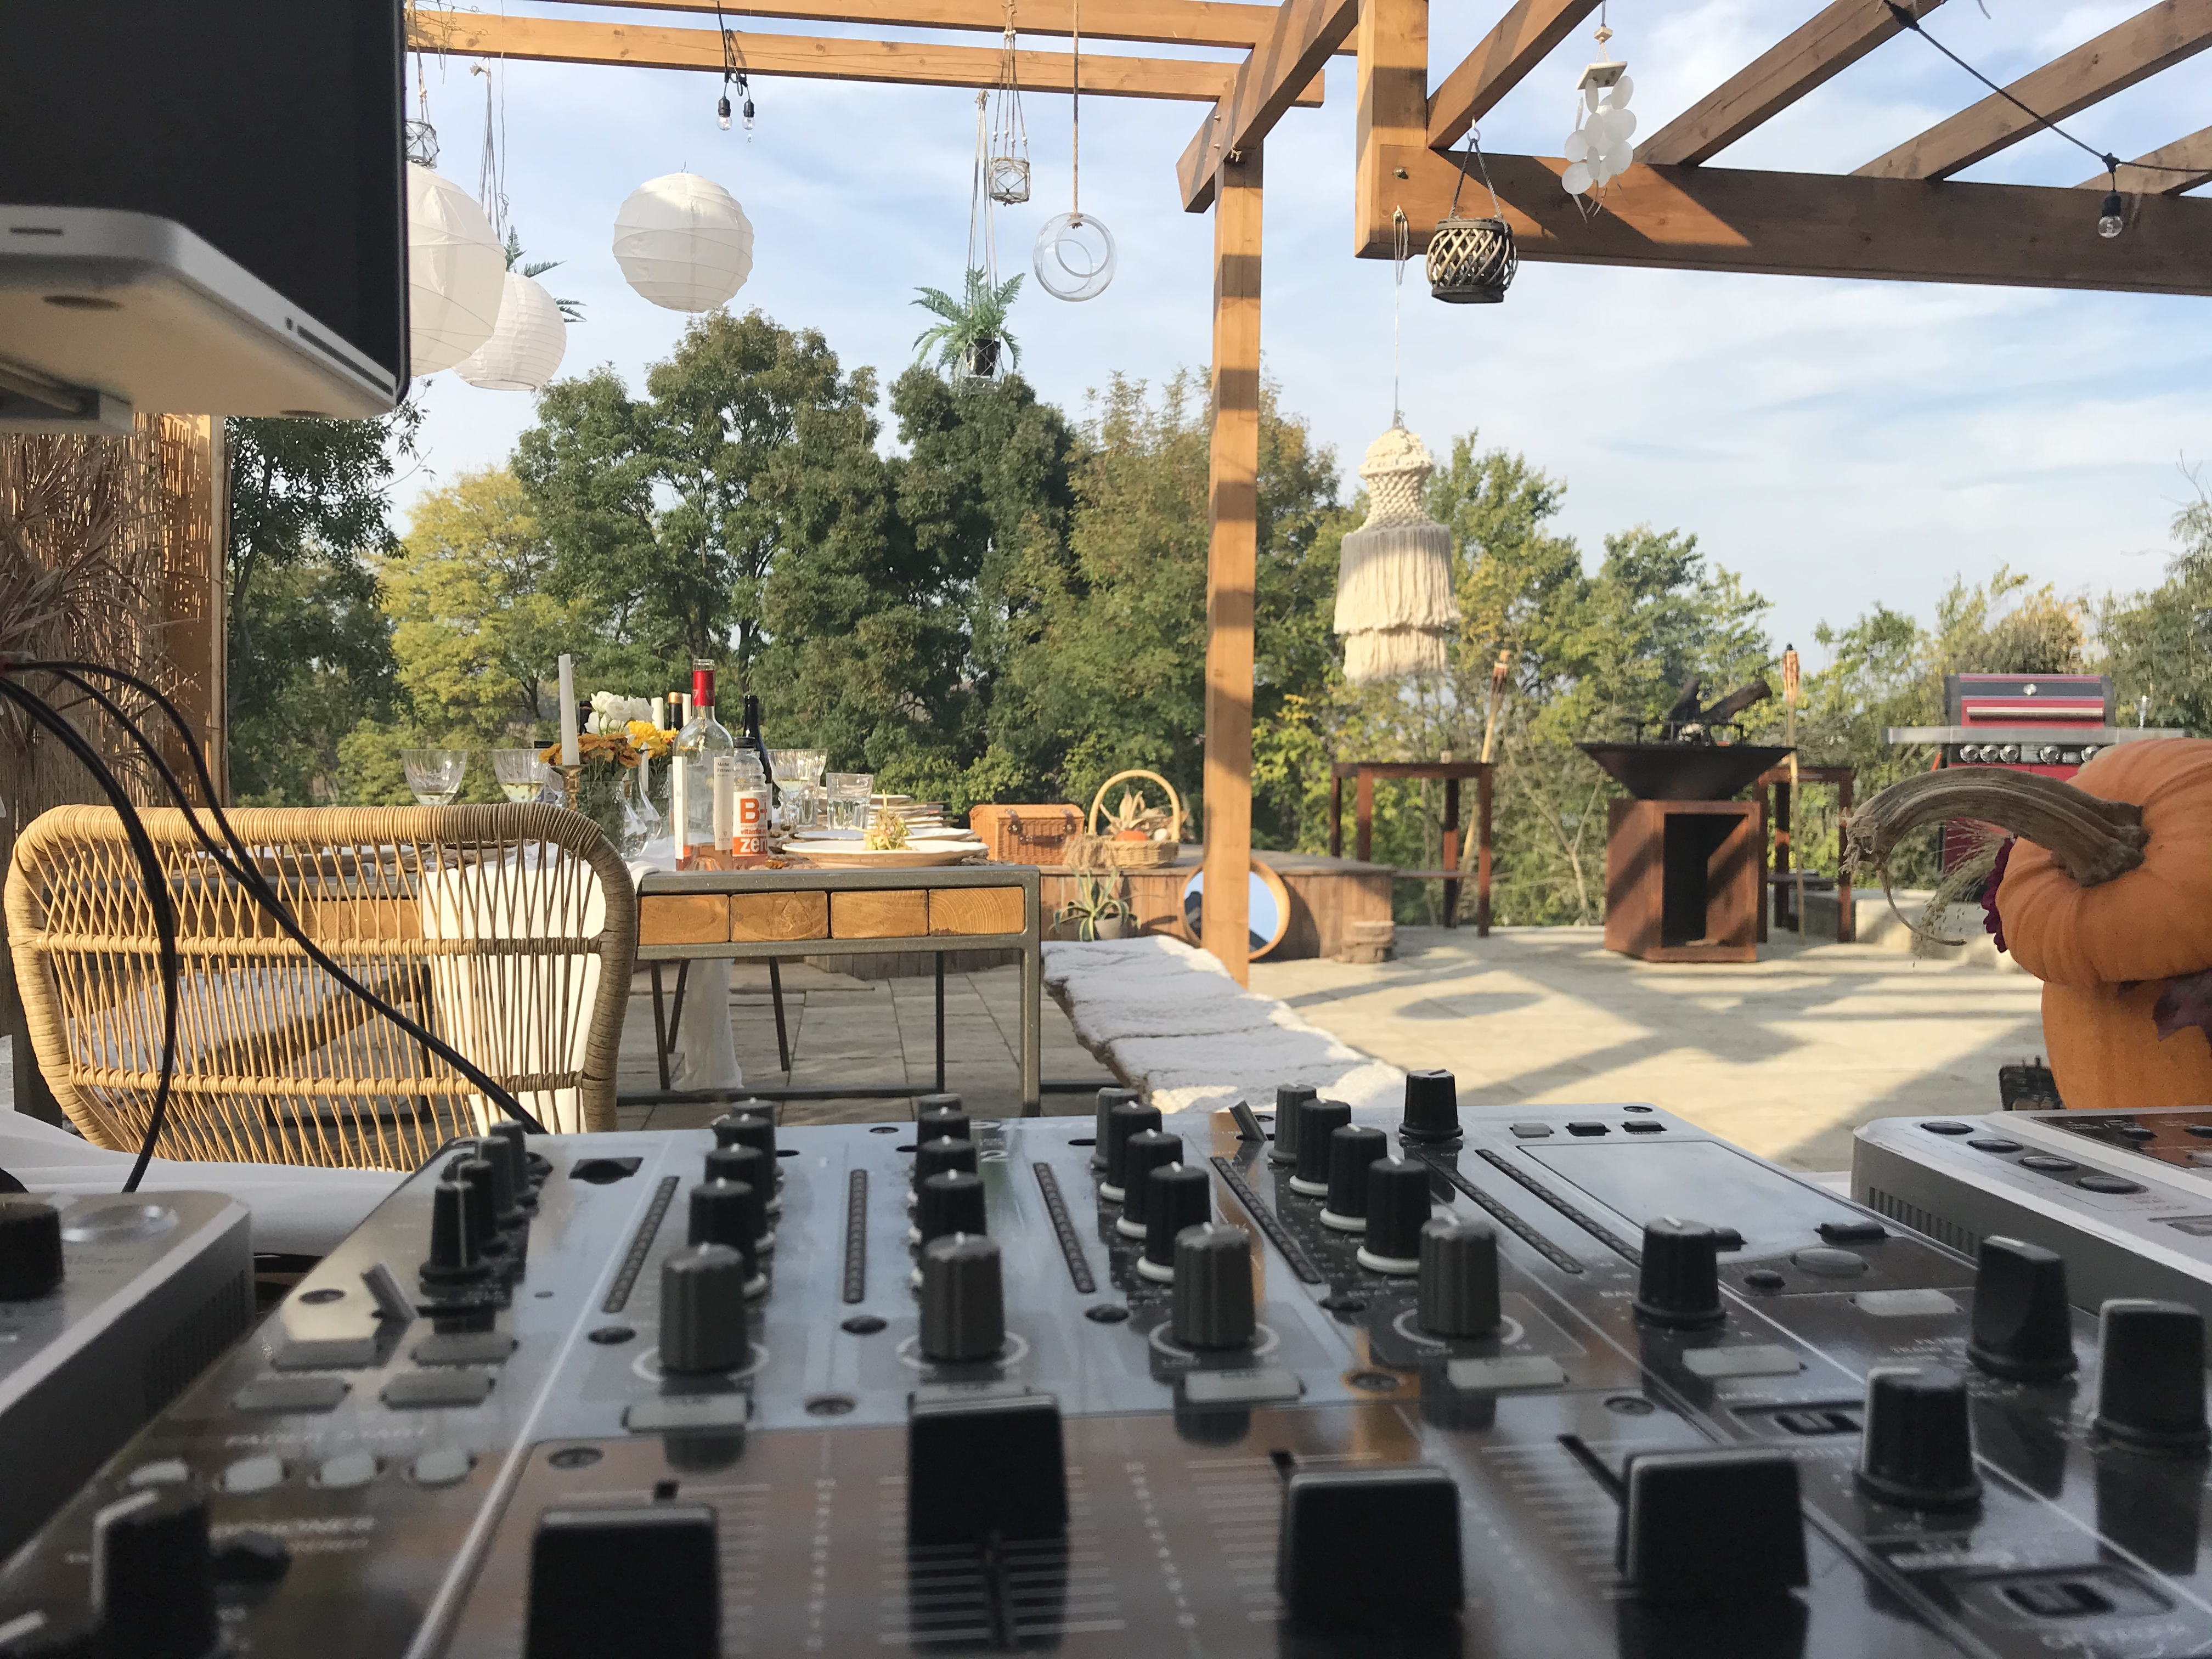 BY THE LAKE (Caciulati) - Dj & Sonorizare Evenimente Private